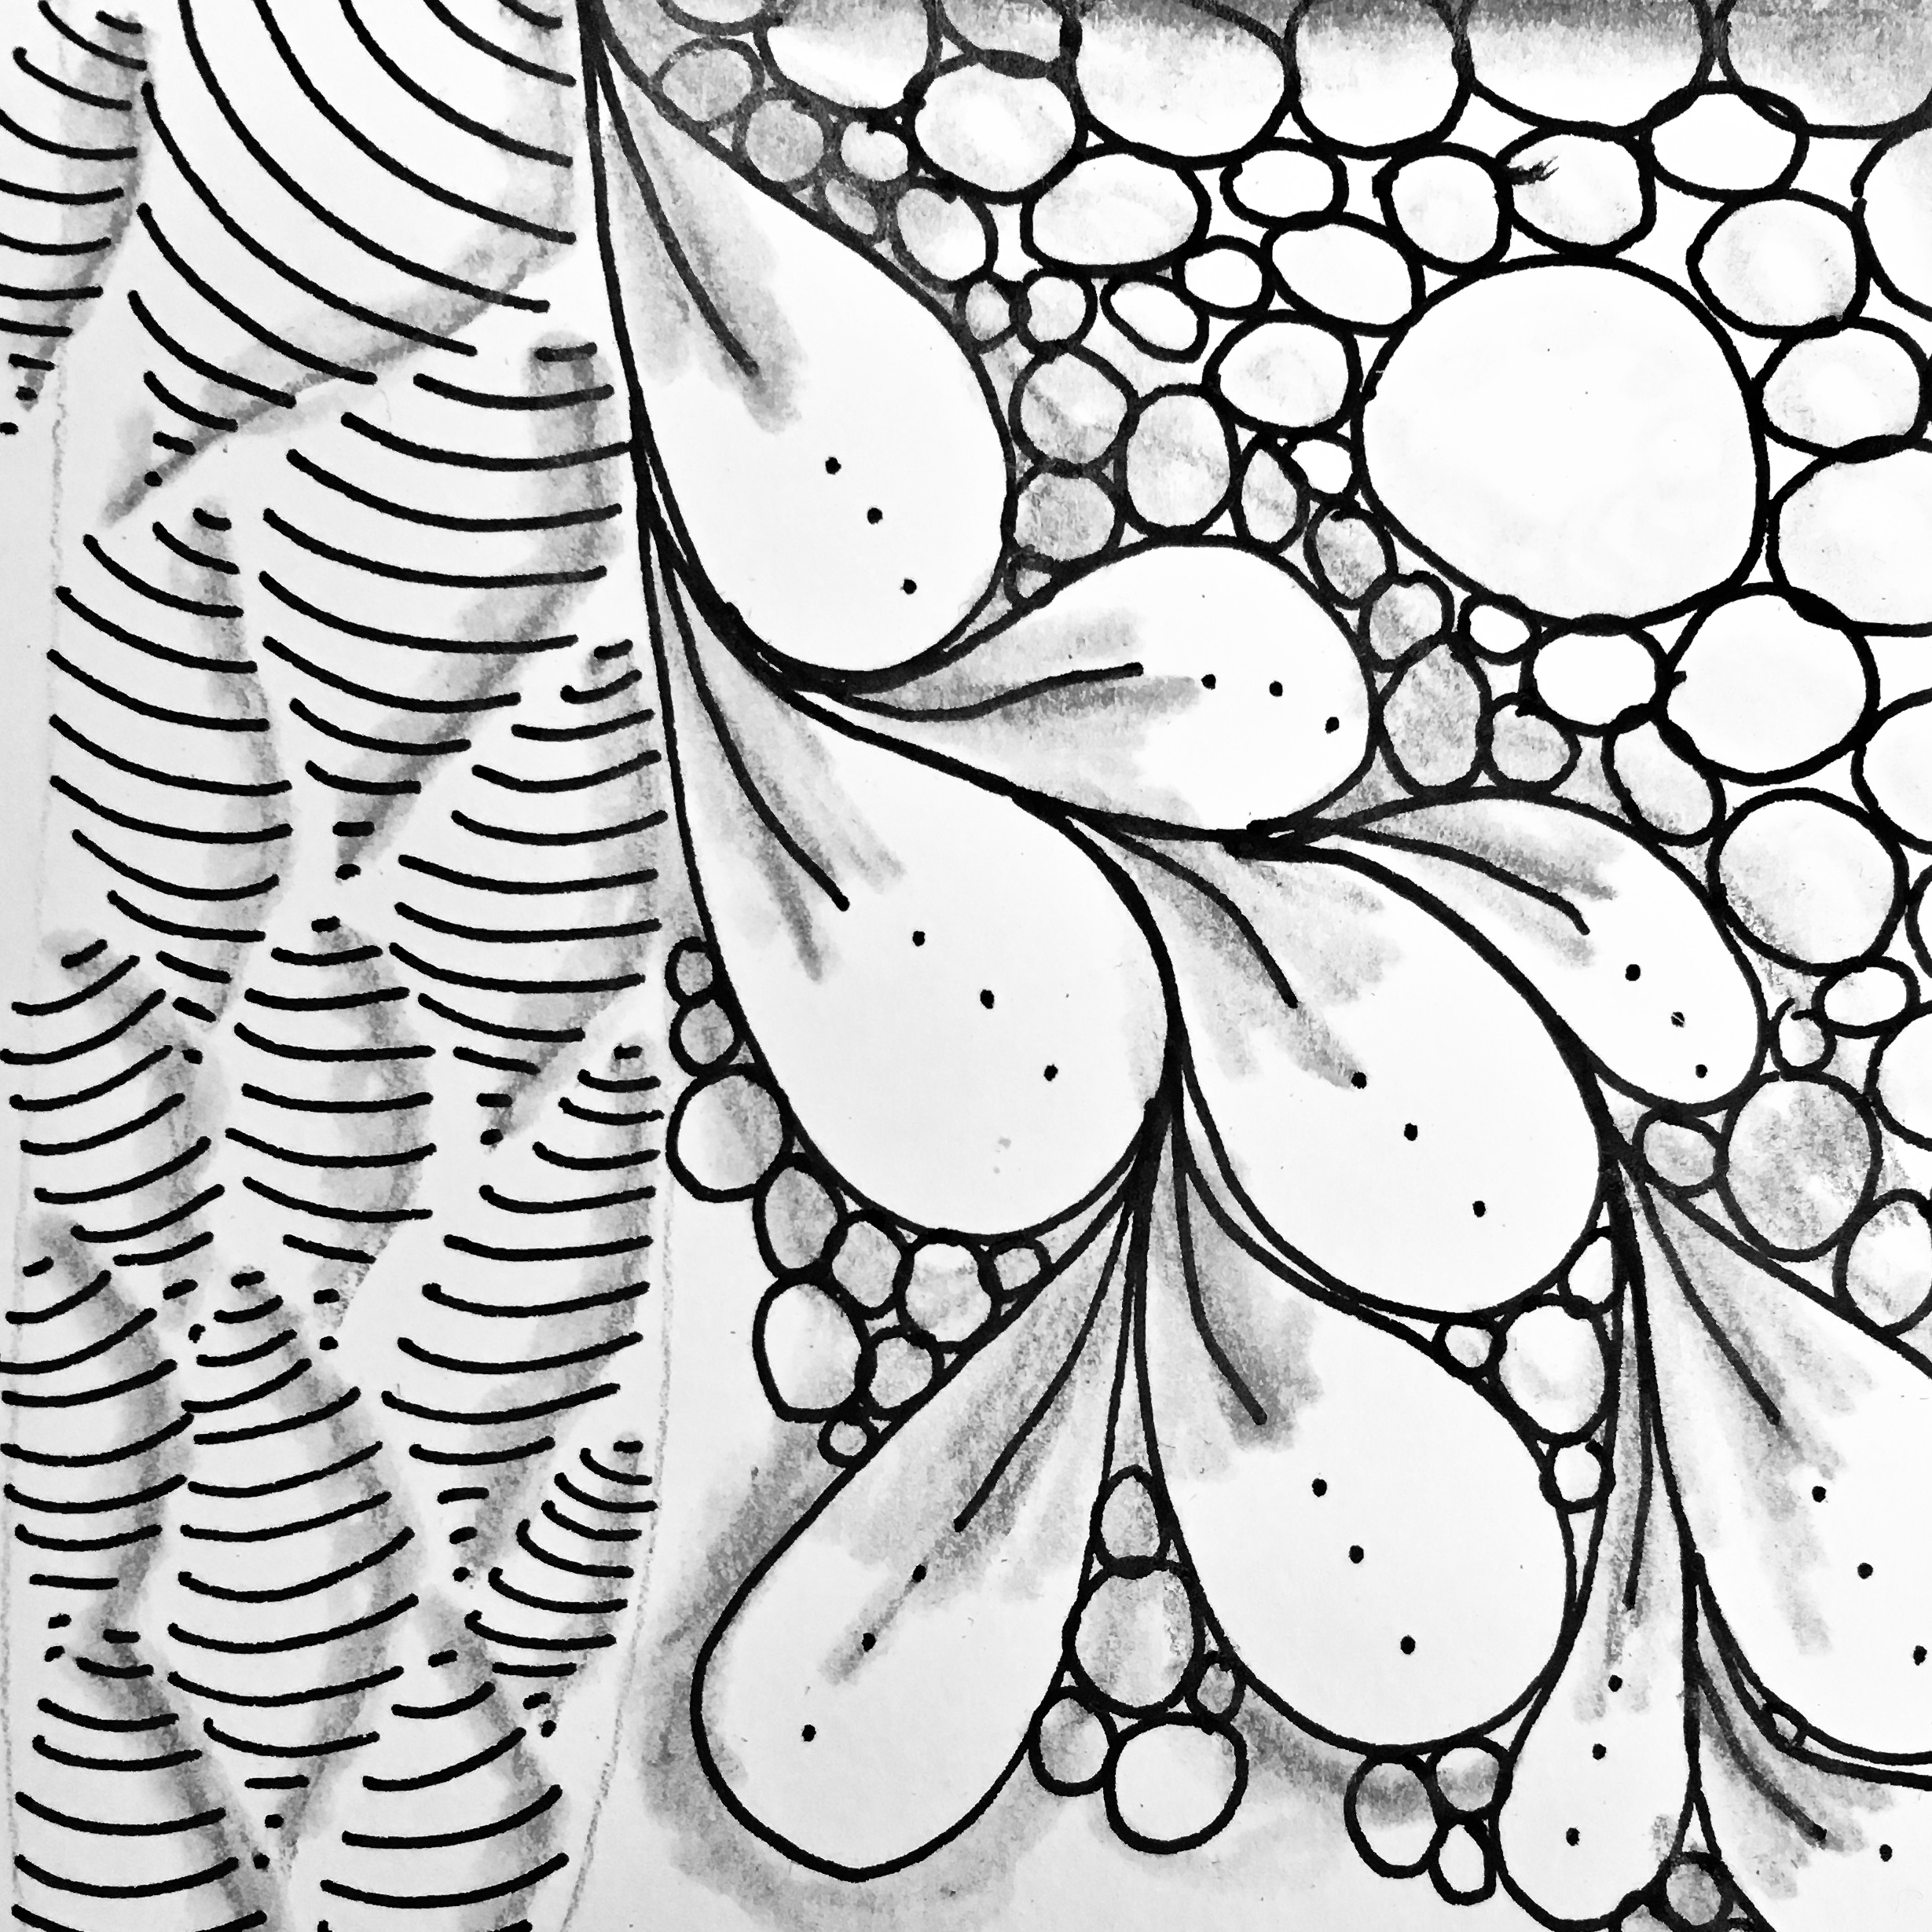 """Zentangle®️ Introduction Class - Learn the basics of the Zentangle method of art. This art form is relaxing and increases your creativity, and it has been used in stress management, can increase attention span, concentration, and fine motor skills. Plus, it's fun!Zentangle takes complicated patterns and breaks them down into manageable steps to create complex designs.You do not need to be an """"artist"""" to enjoy Zentangle.If you can write I, C, S, & O, you can do it - really!!"""